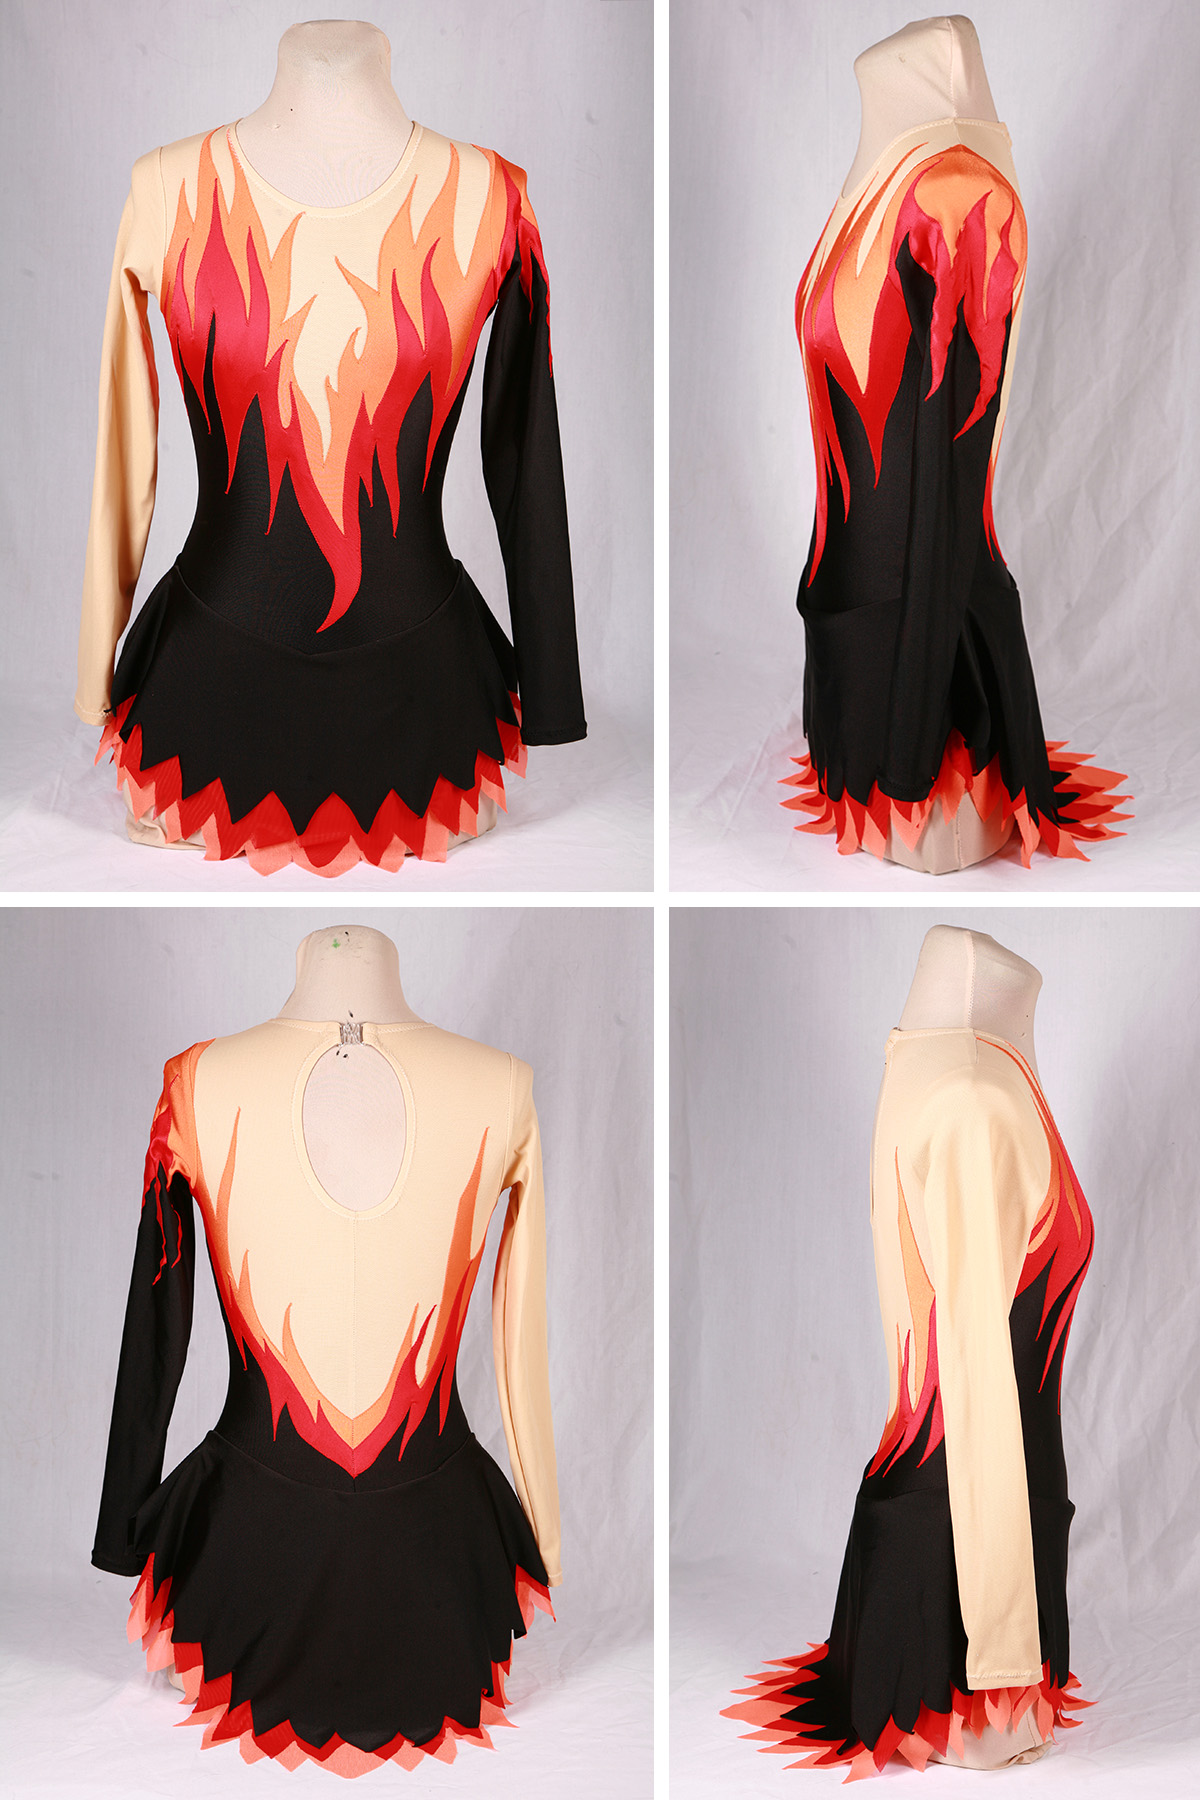 A 4 part compilation image showing front, back, and side views of the flames skating dress. The main body is black, one sleeve and the shoulders, upper chest, and one sleeve is beige, and a bright red and orange flames design separates the beige and black areas.